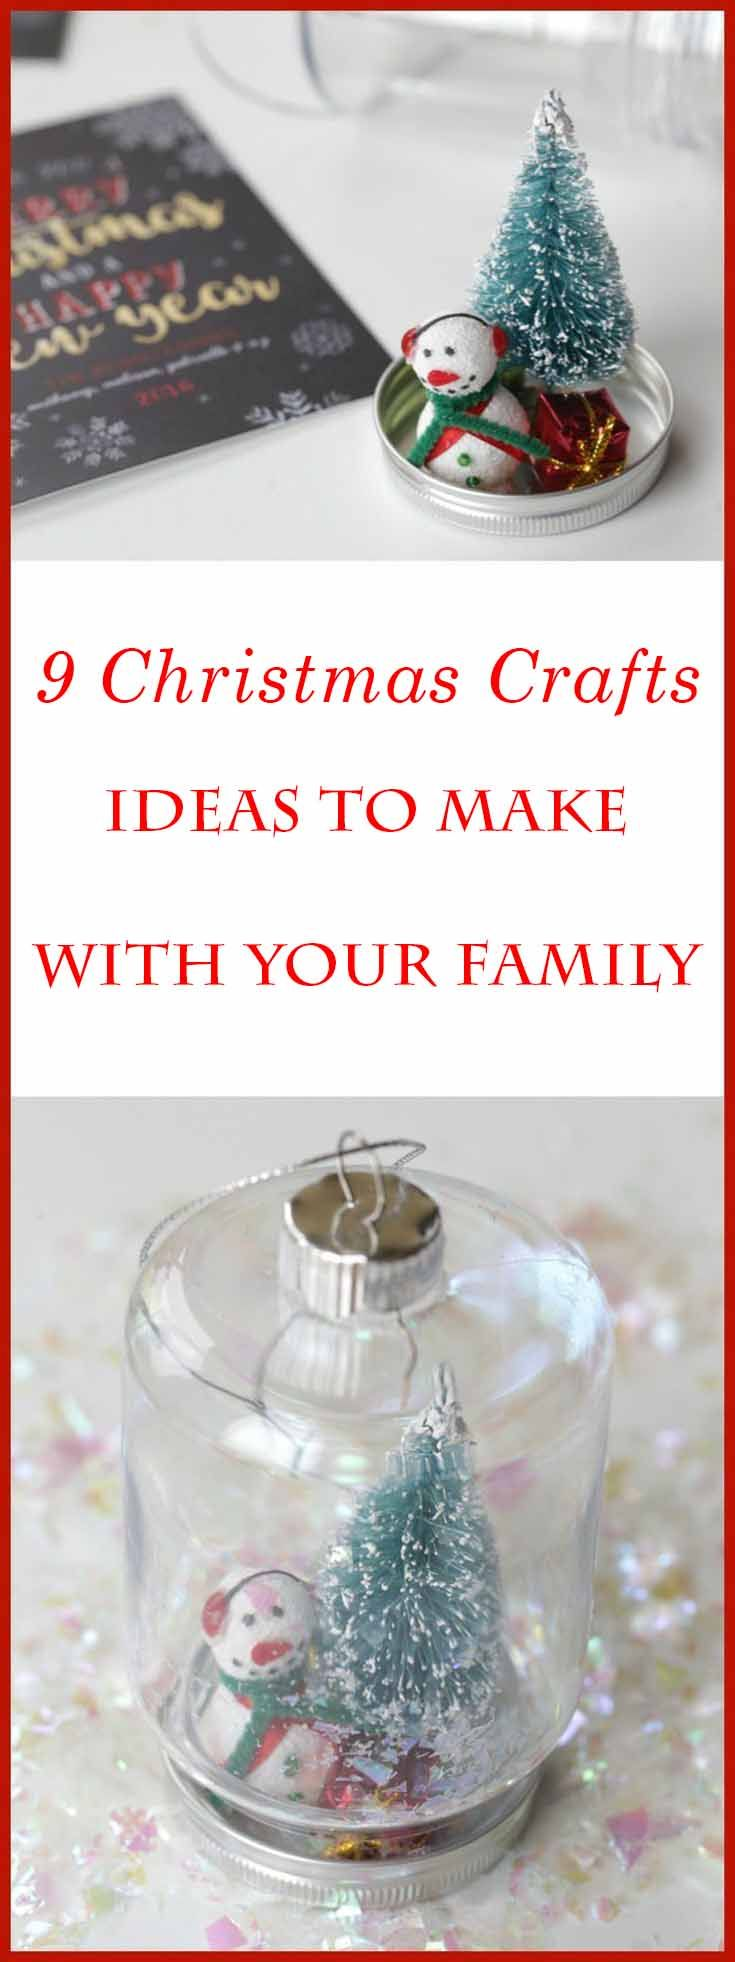 12 Amazing Christmas Gifts Ideas for Family Members | Christmas ...